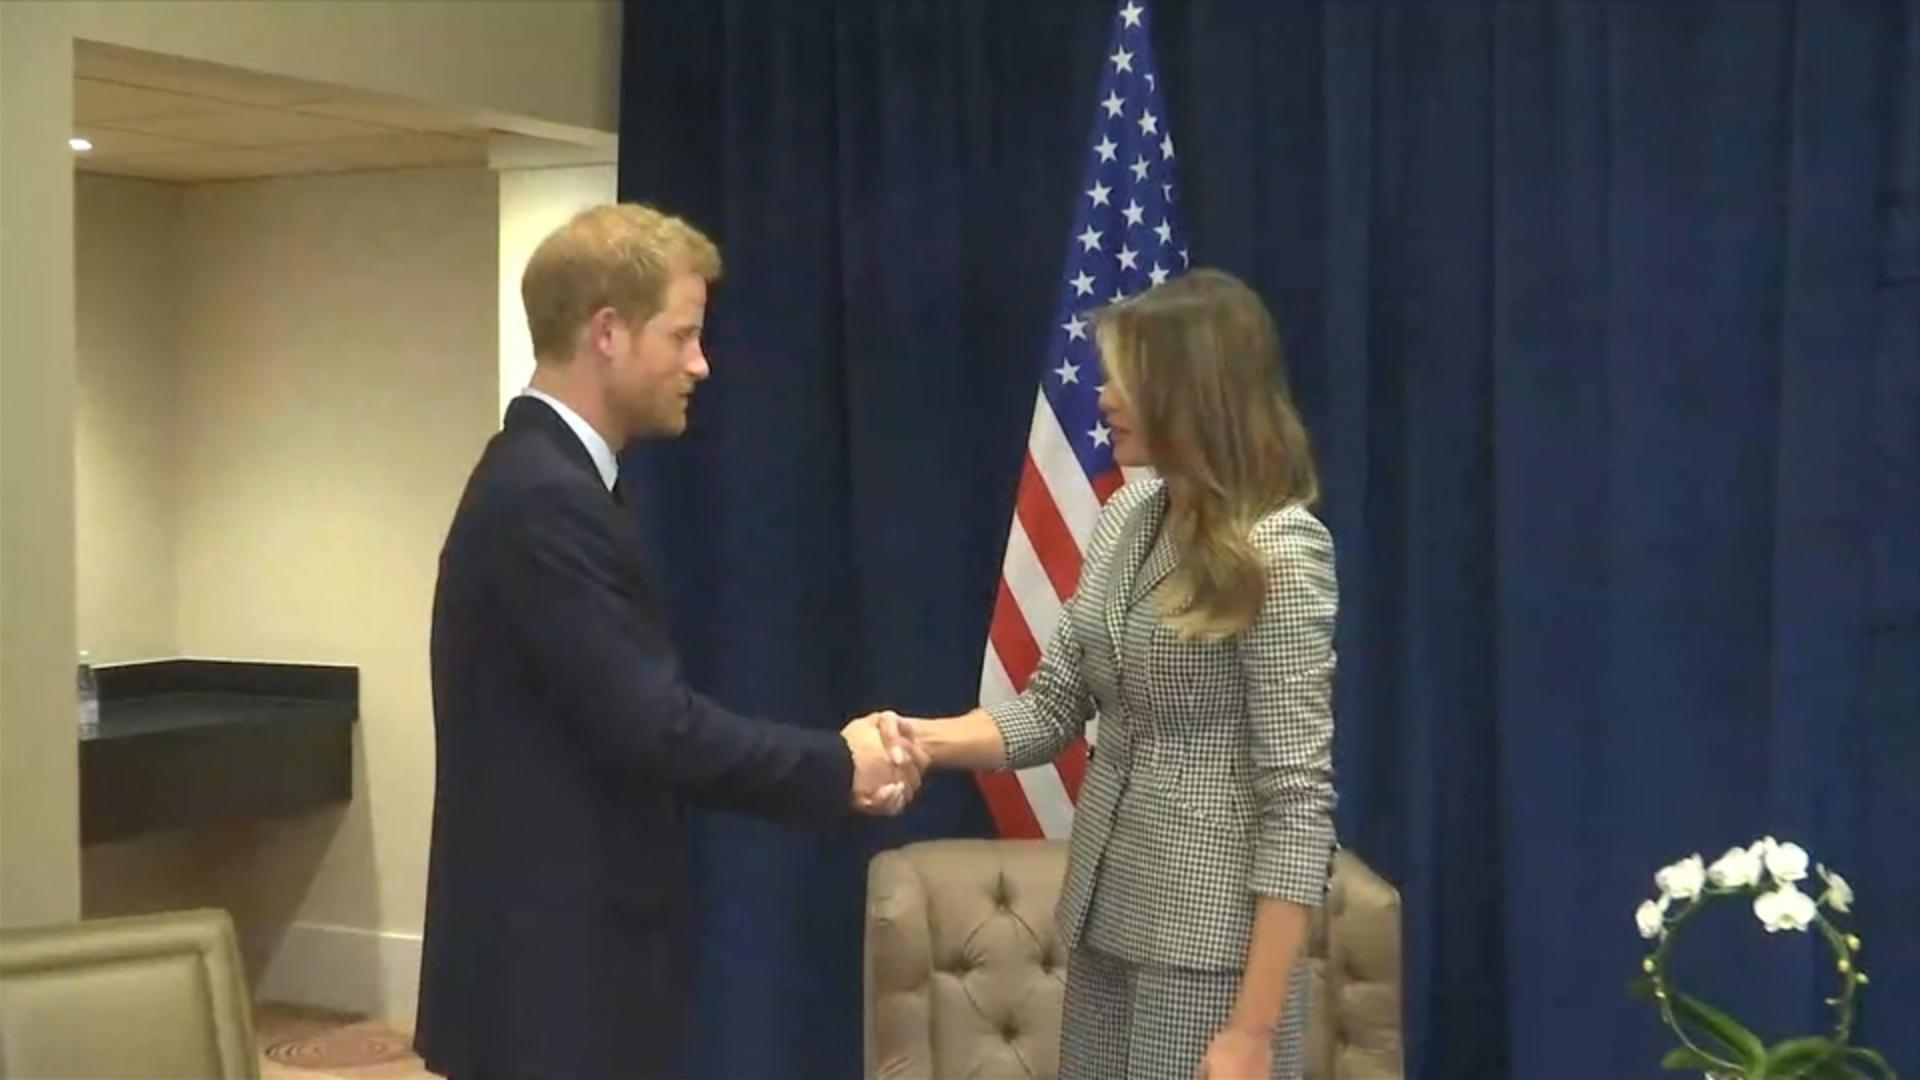 Body Language Experts Explain Prince Harry's Strange Pose With Melania Trump | HuffPost Life